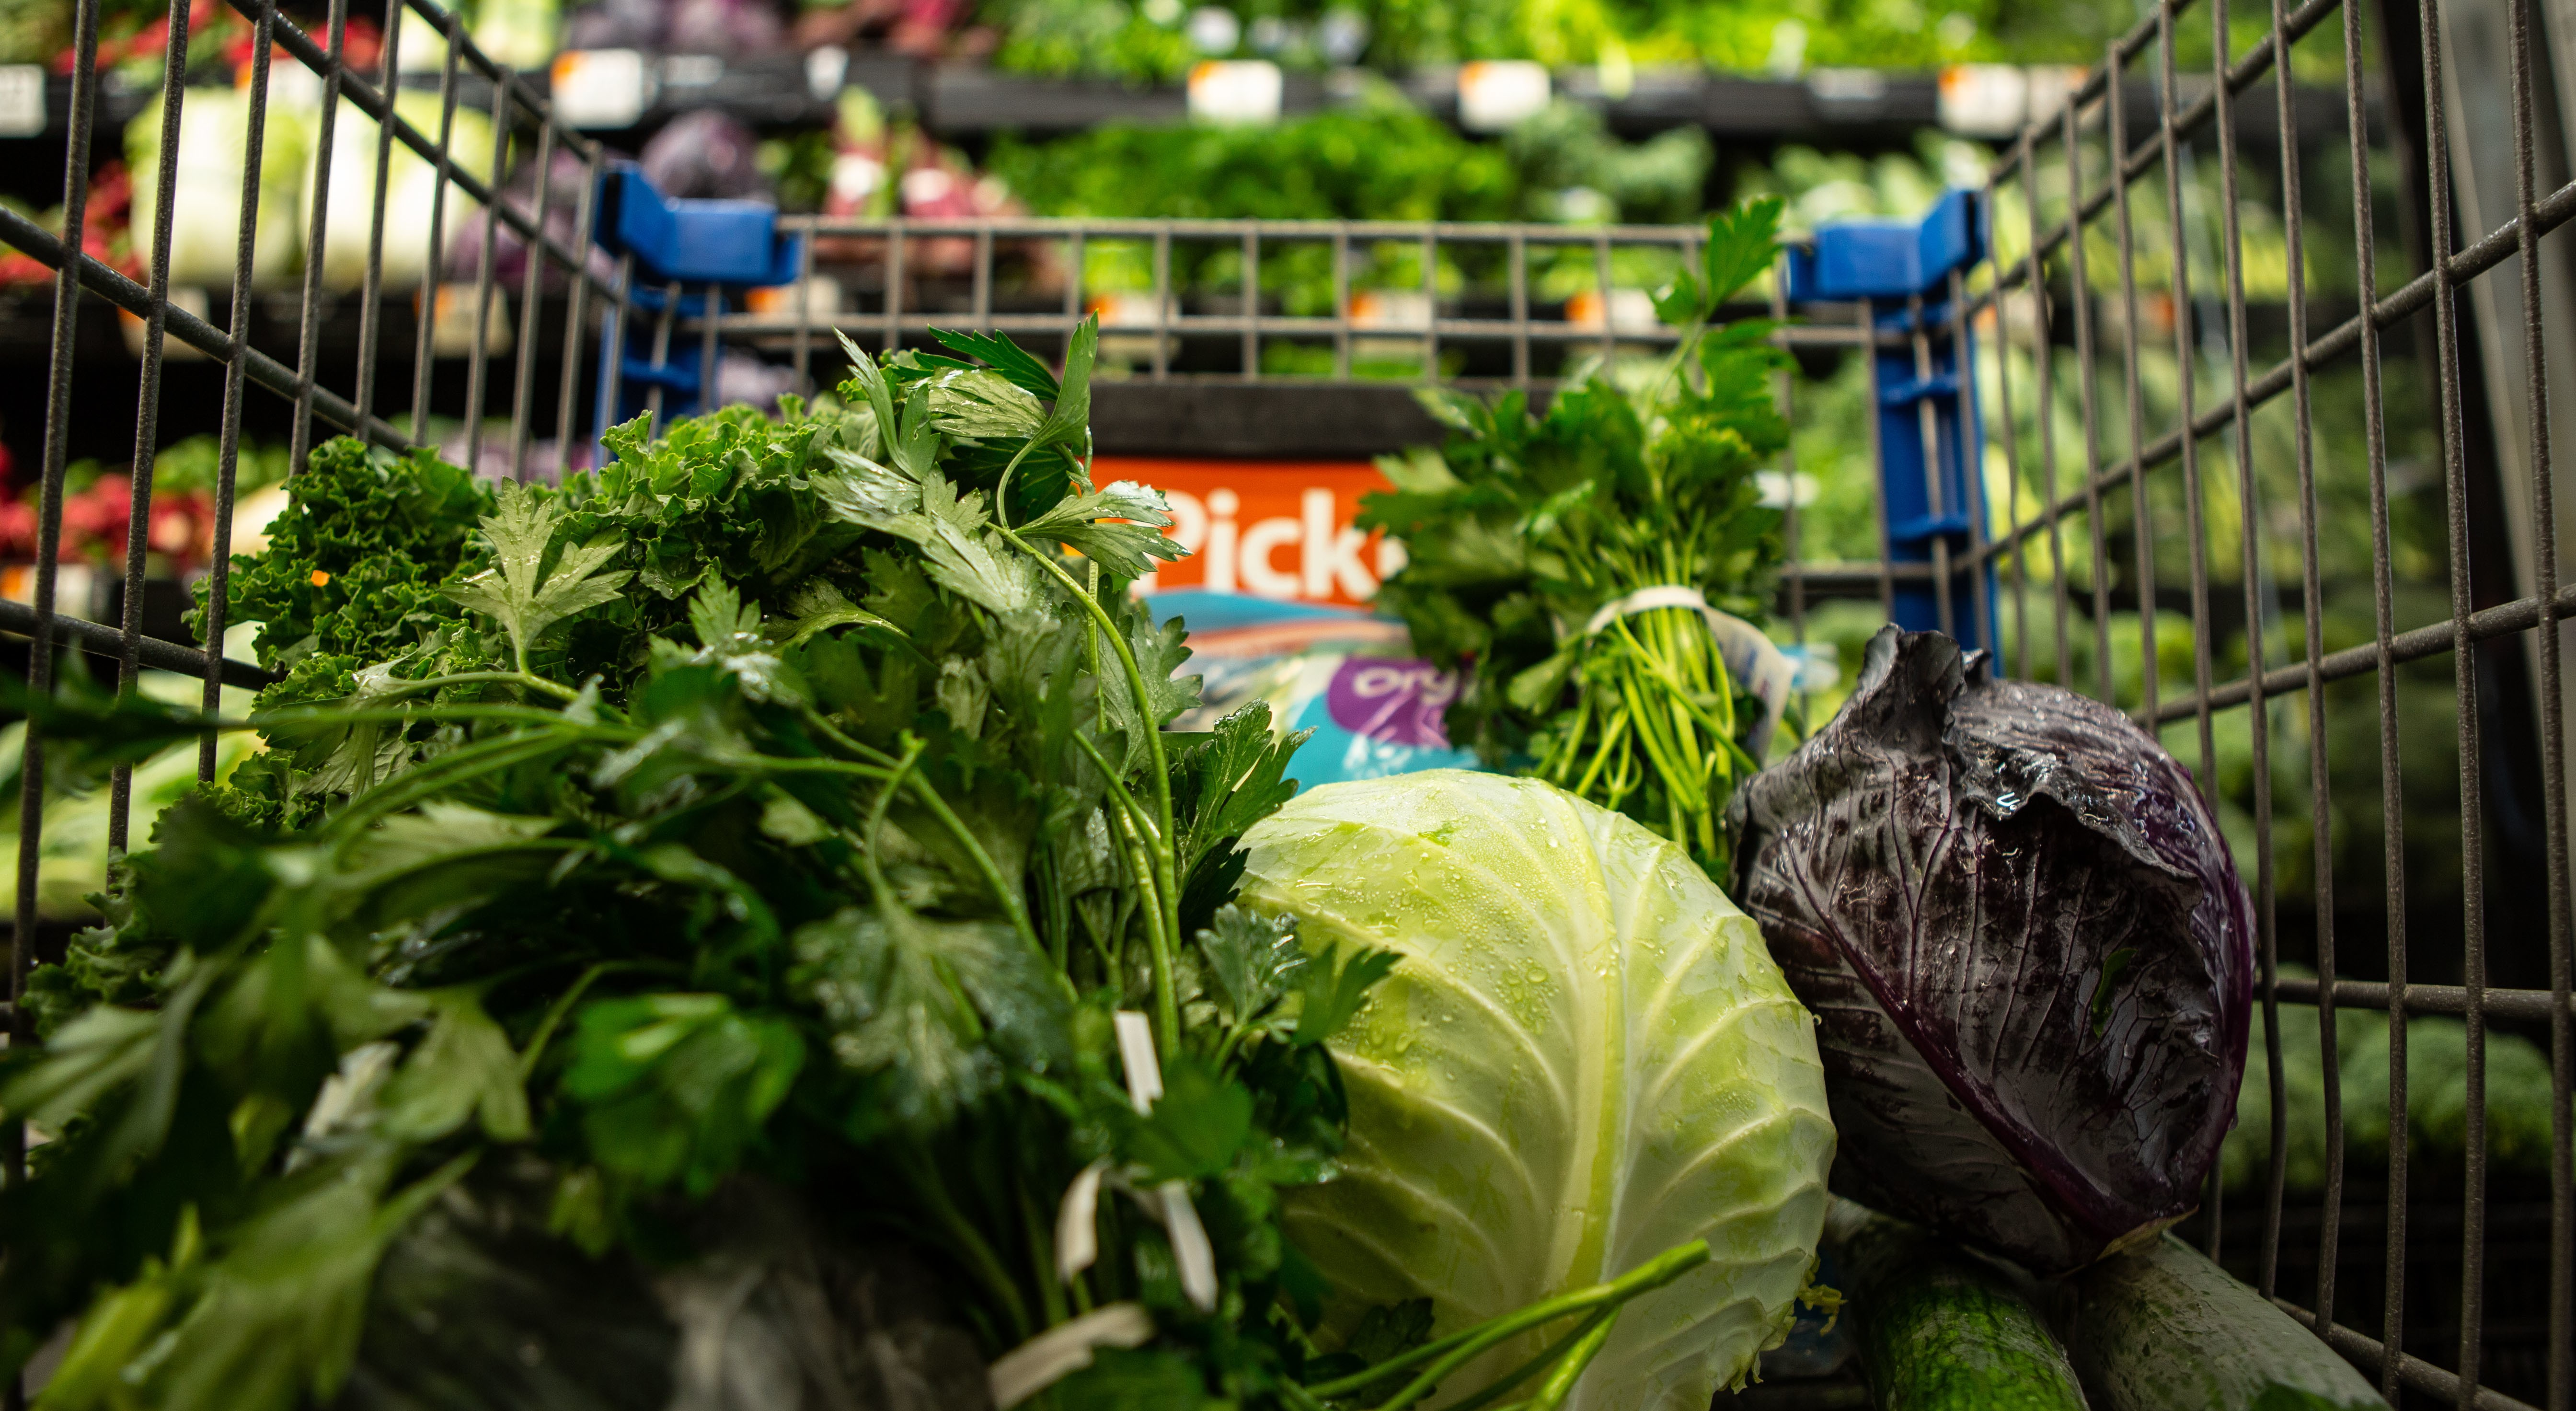 Lettuce and fresh produce in a shopping cart